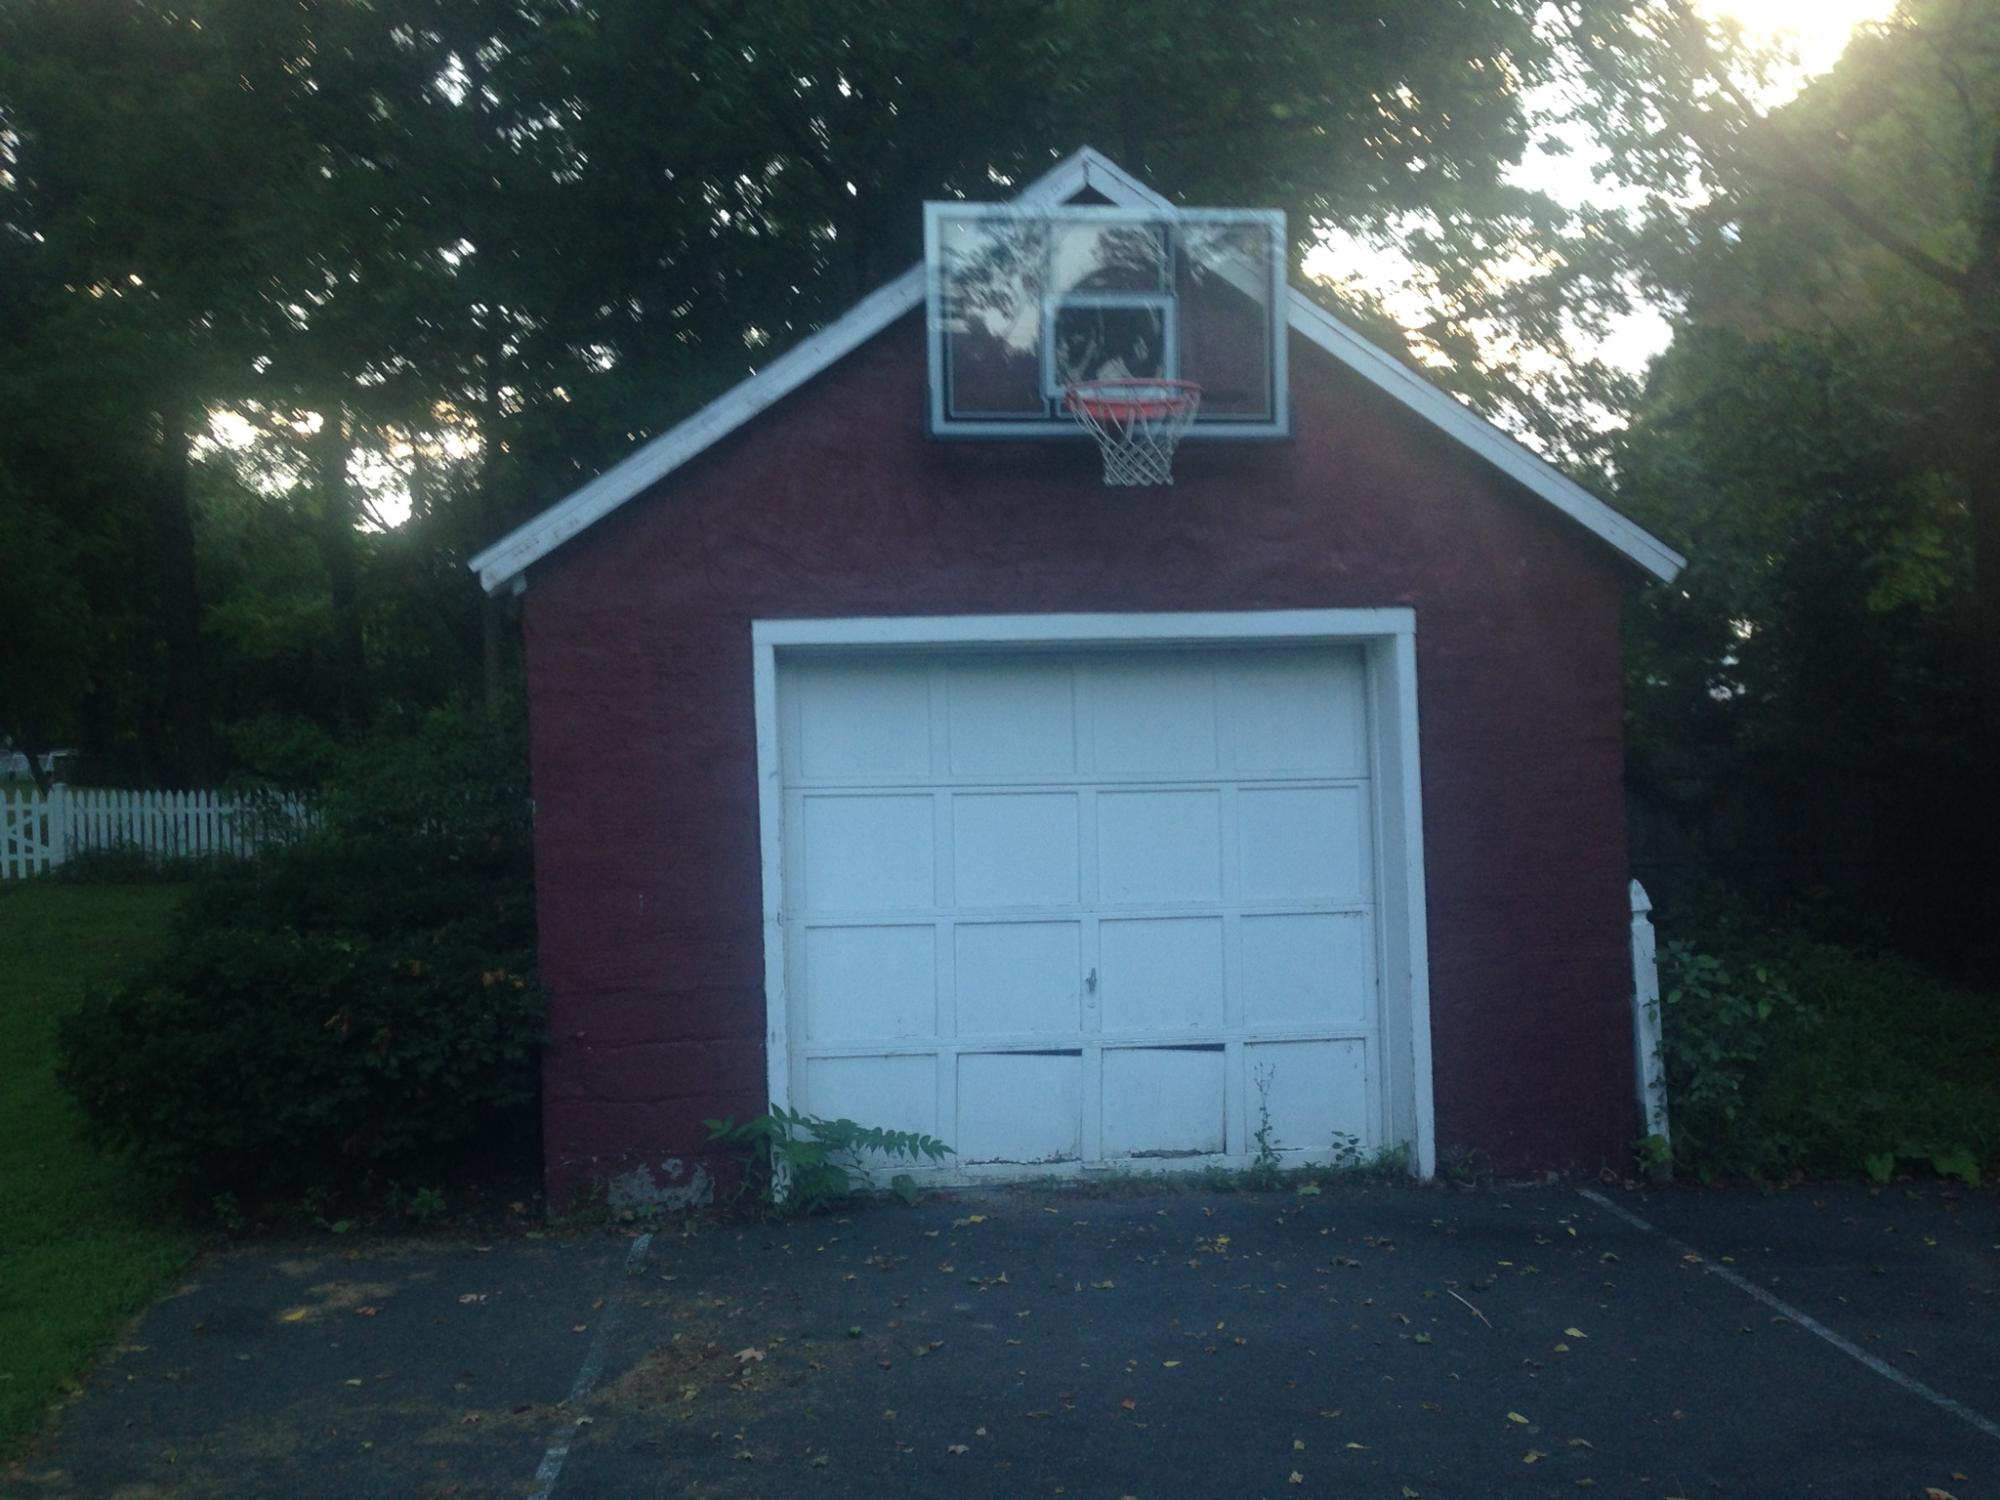 24x24 Skylight Garages Amish Garage 1 Car Garage 2 Car Garage 3 Car